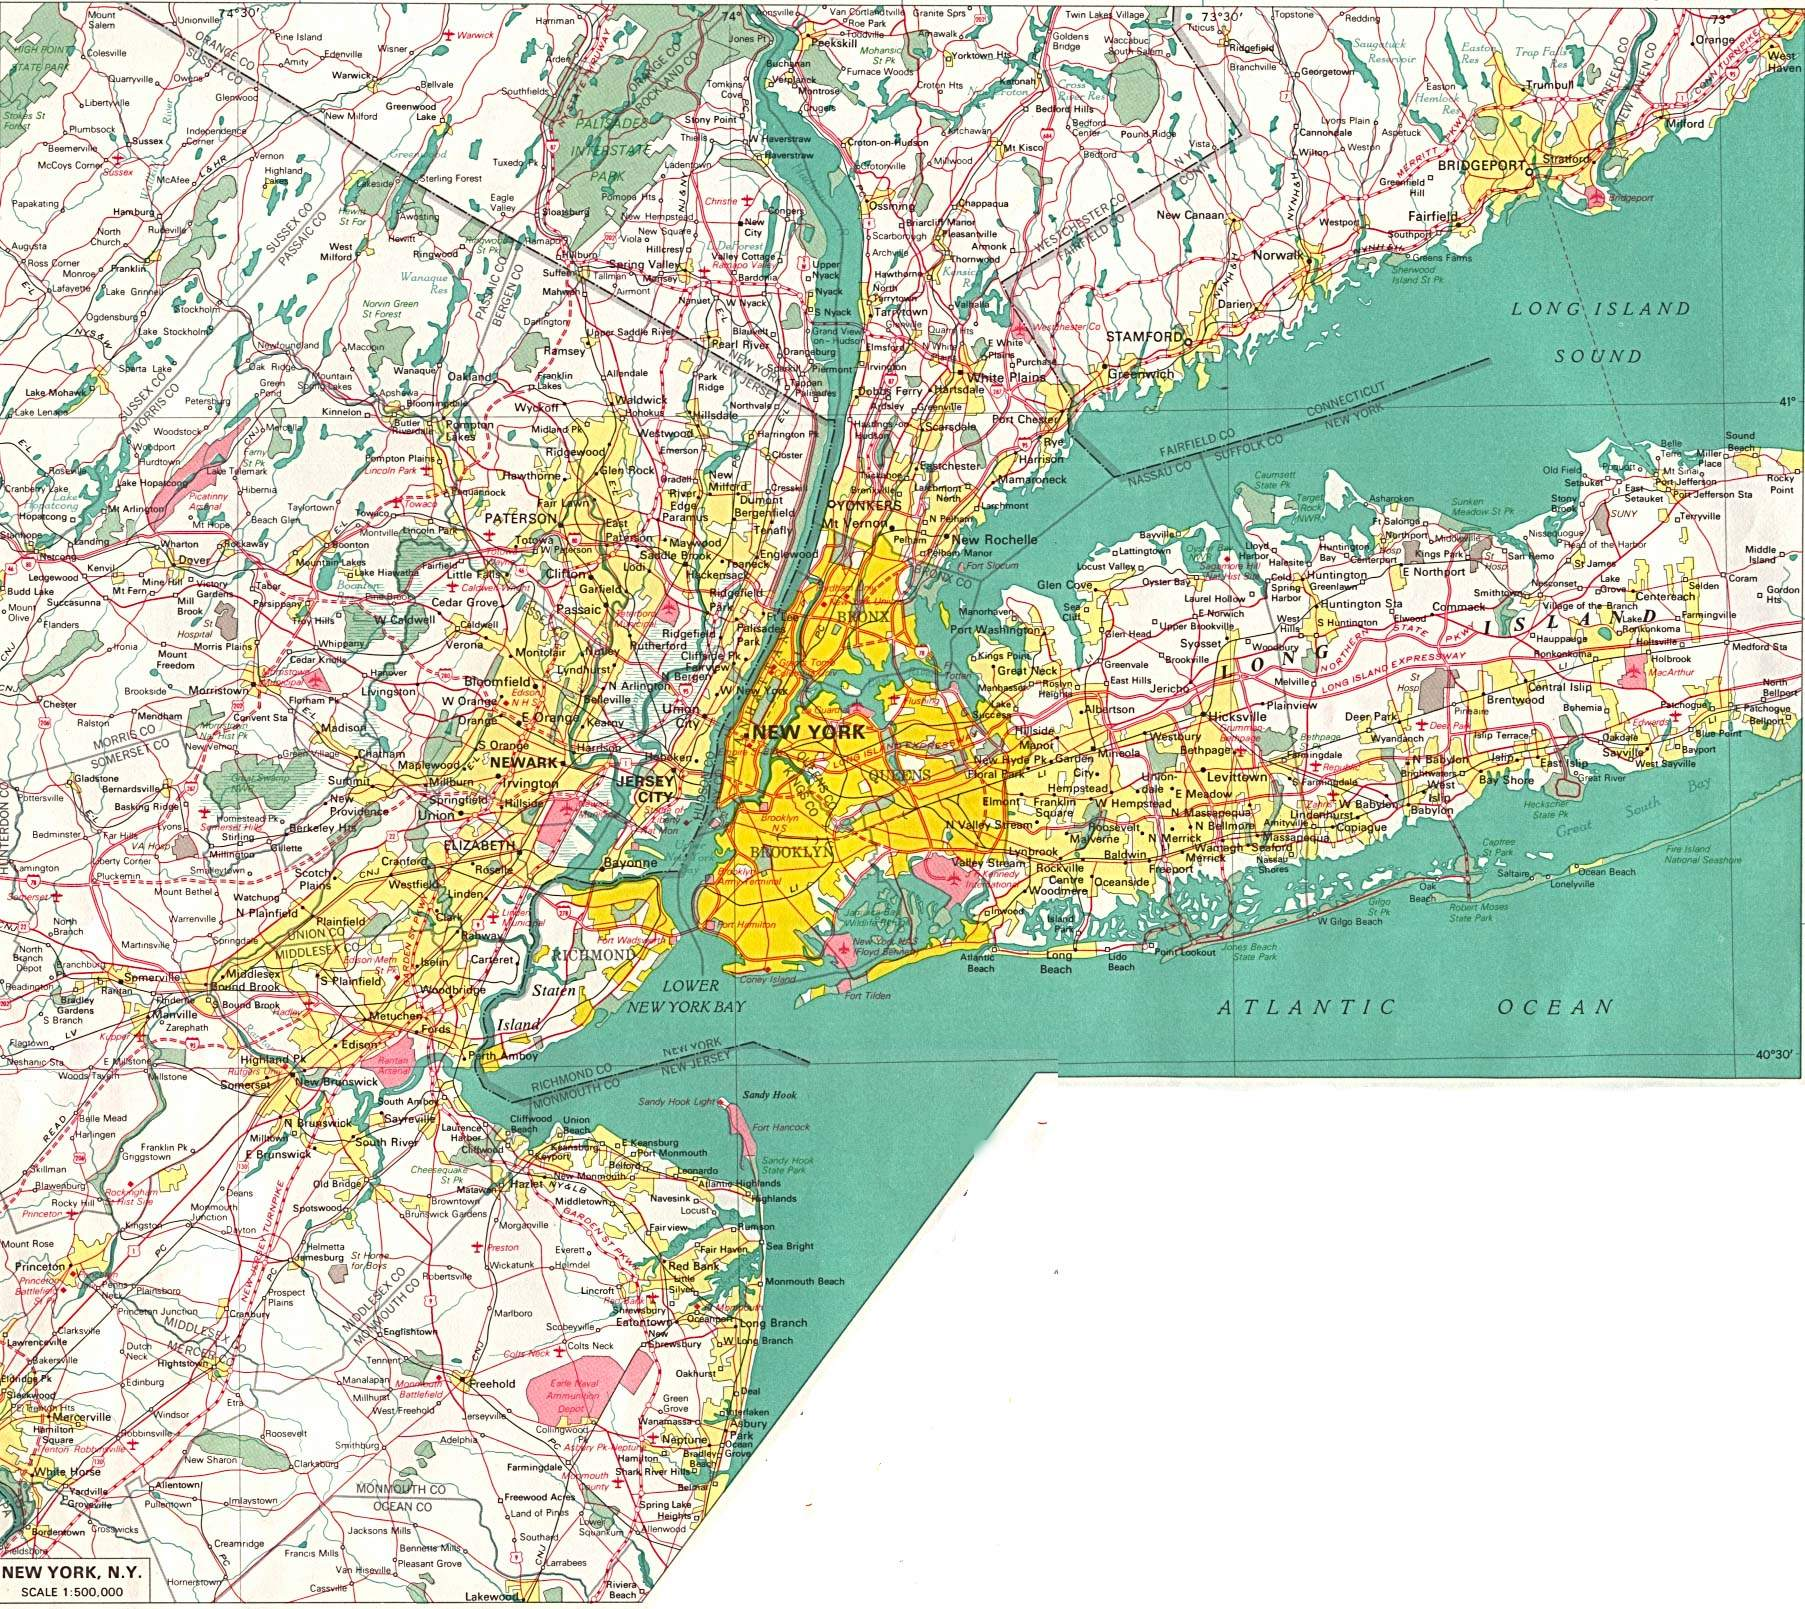 Detailed Map Of New York City.Large New York Maps For Free Download And Print High Resolution